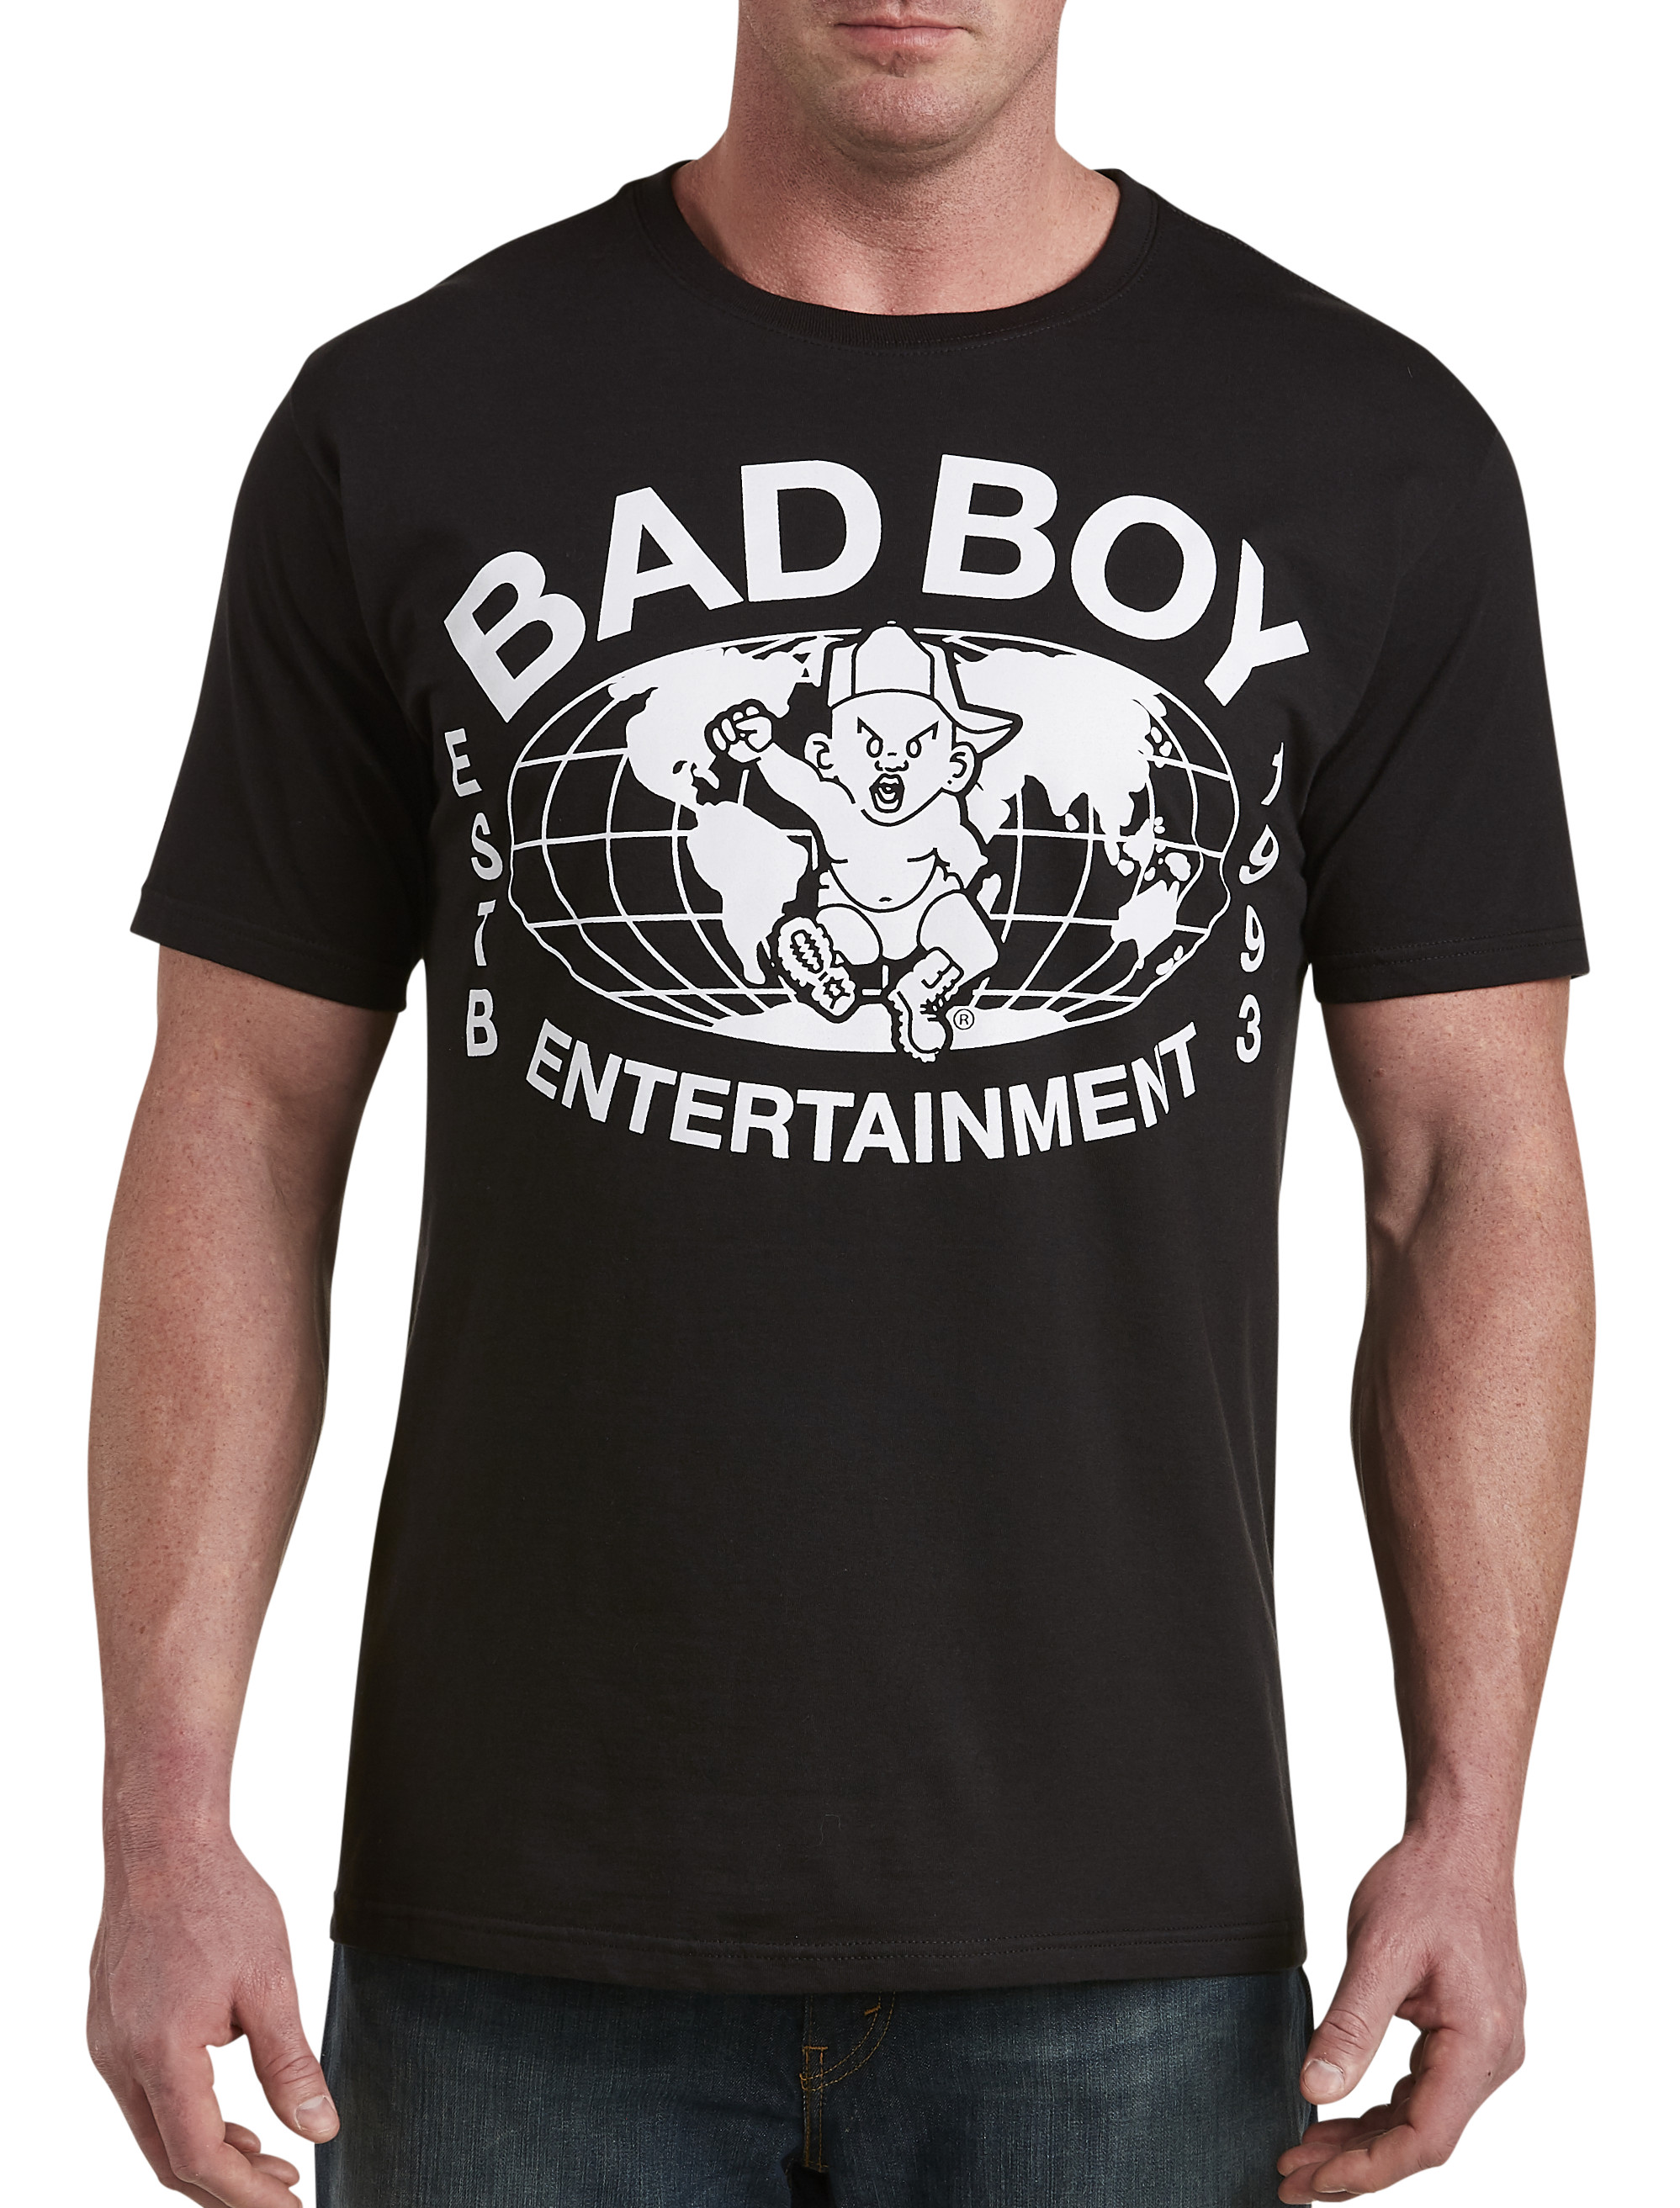 Bad Boy Entertainment Graphic Tee | Tuggl